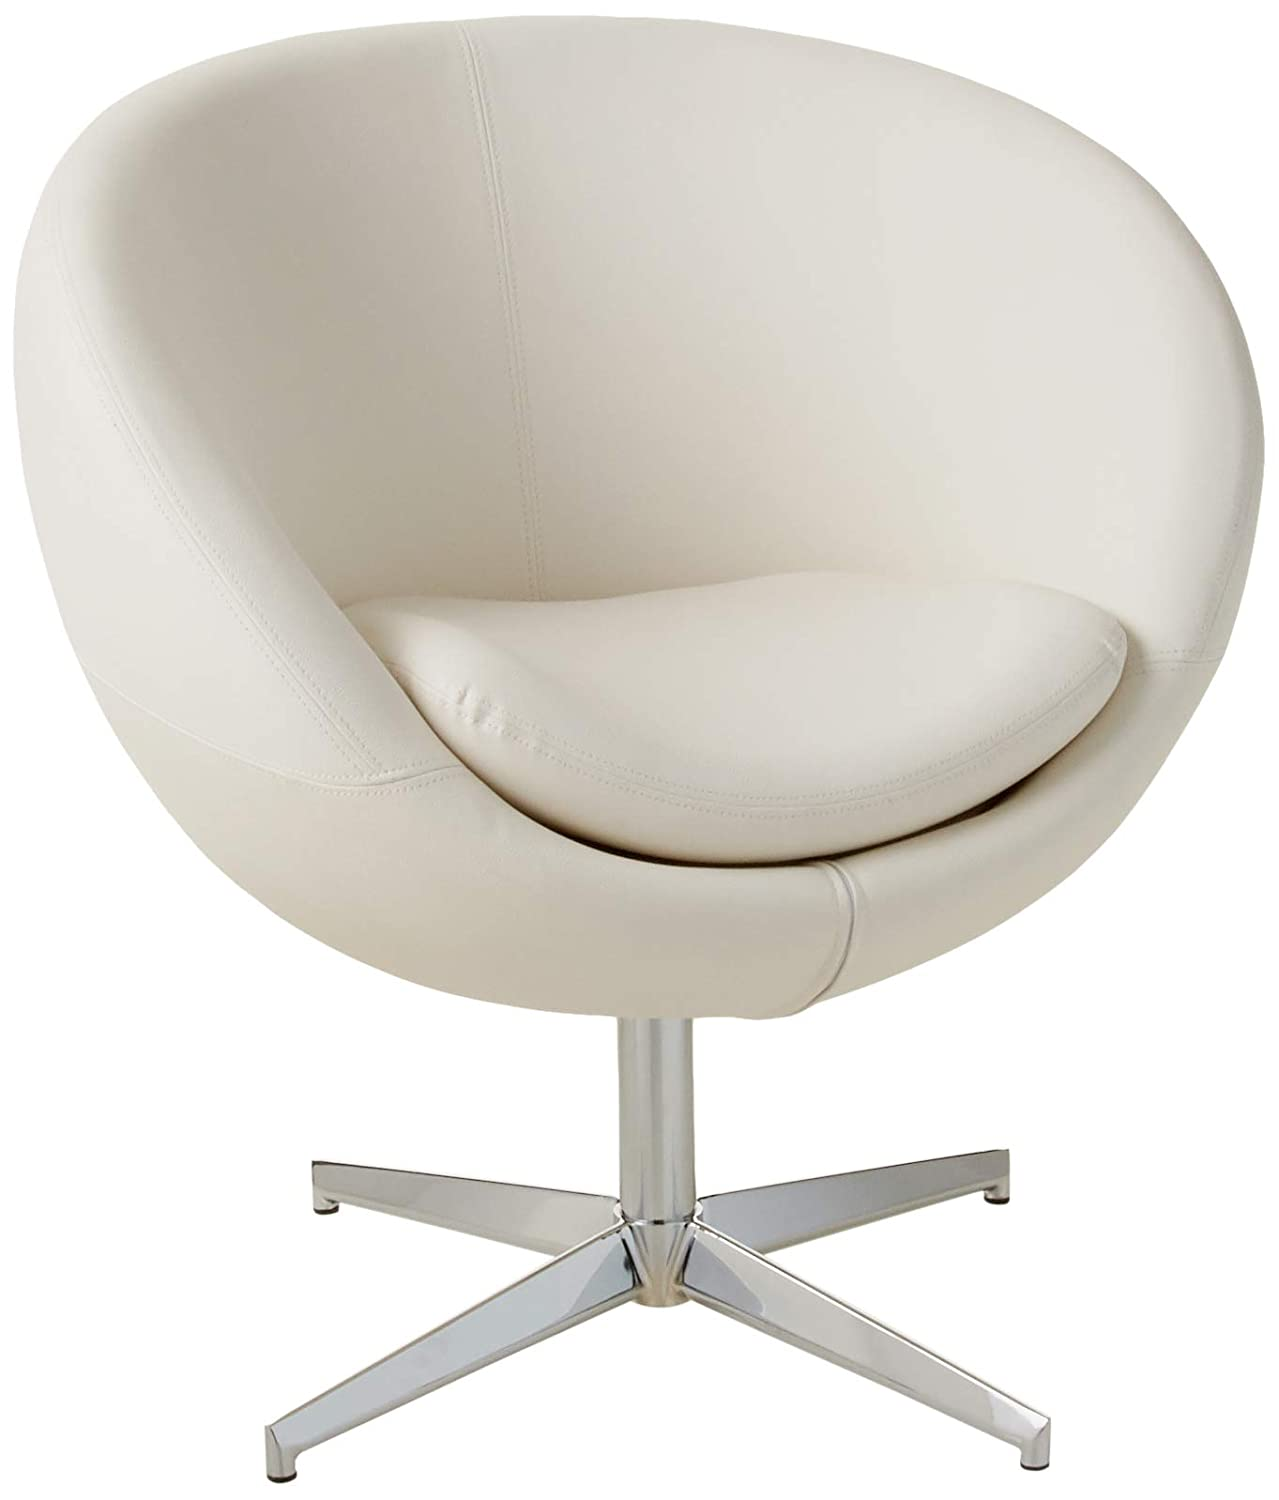 Miraculous Best Selling Modern Leather Round Back Chair White Machost Co Dining Chair Design Ideas Machostcouk